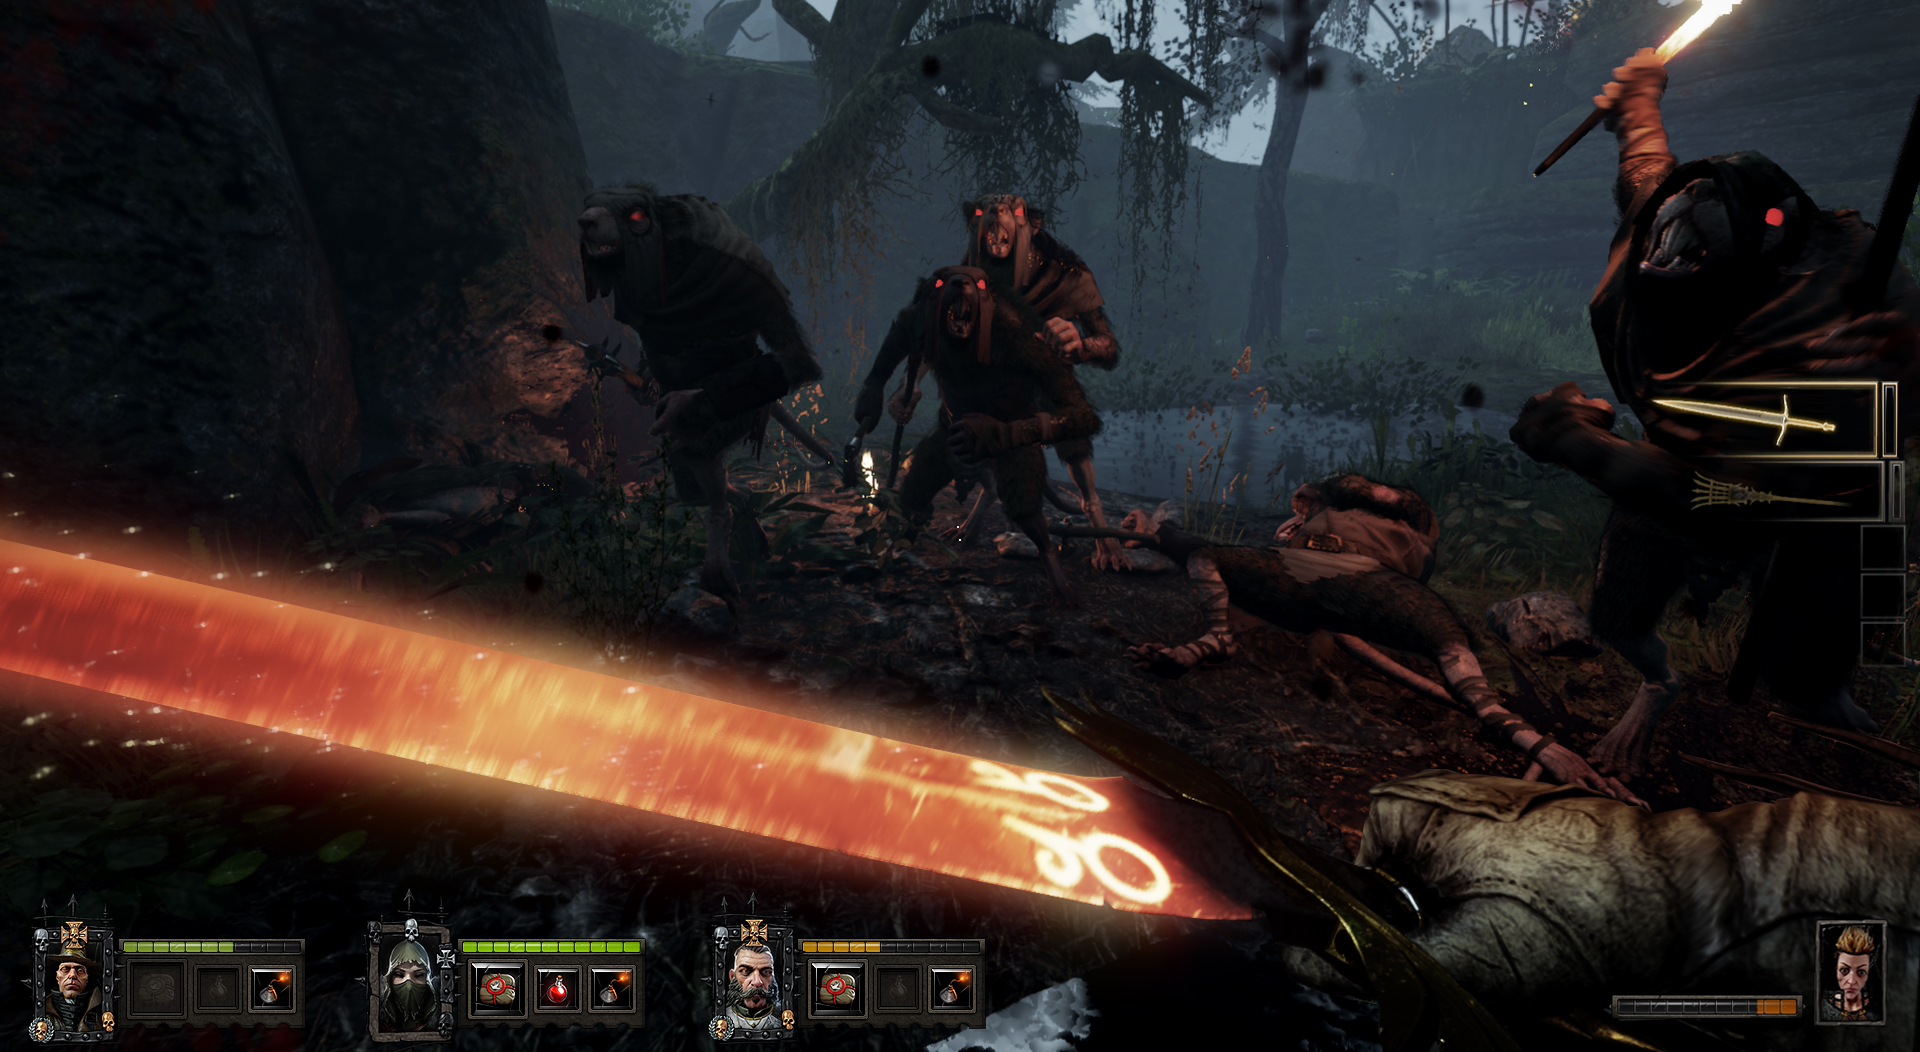 Warhammer End Times Vermintide On Steam Hacks And Mods Computer Case 40k